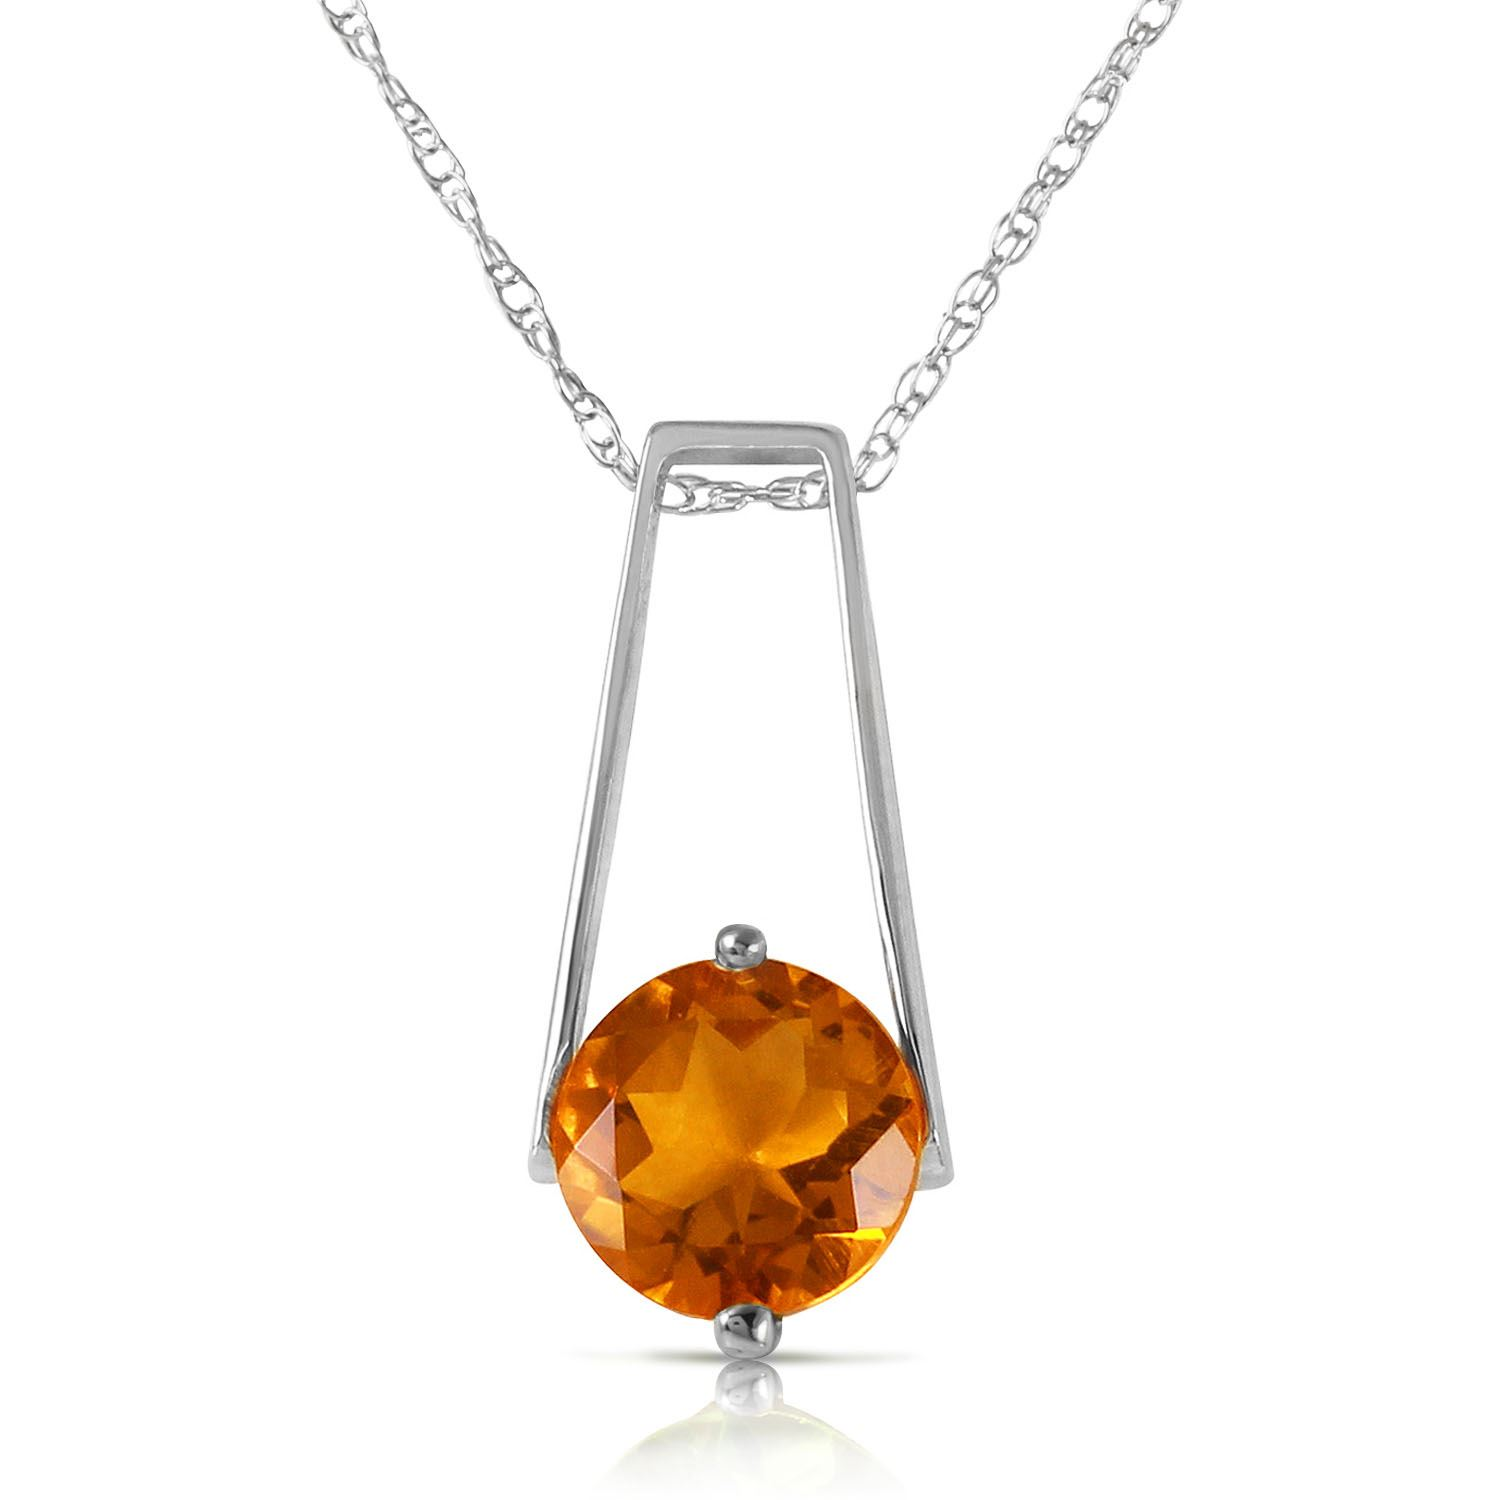 ALARRI 1.45 Carat 14K Solid White Gold Smooth Love Citrine Necklace with 22 Inch Chain Length